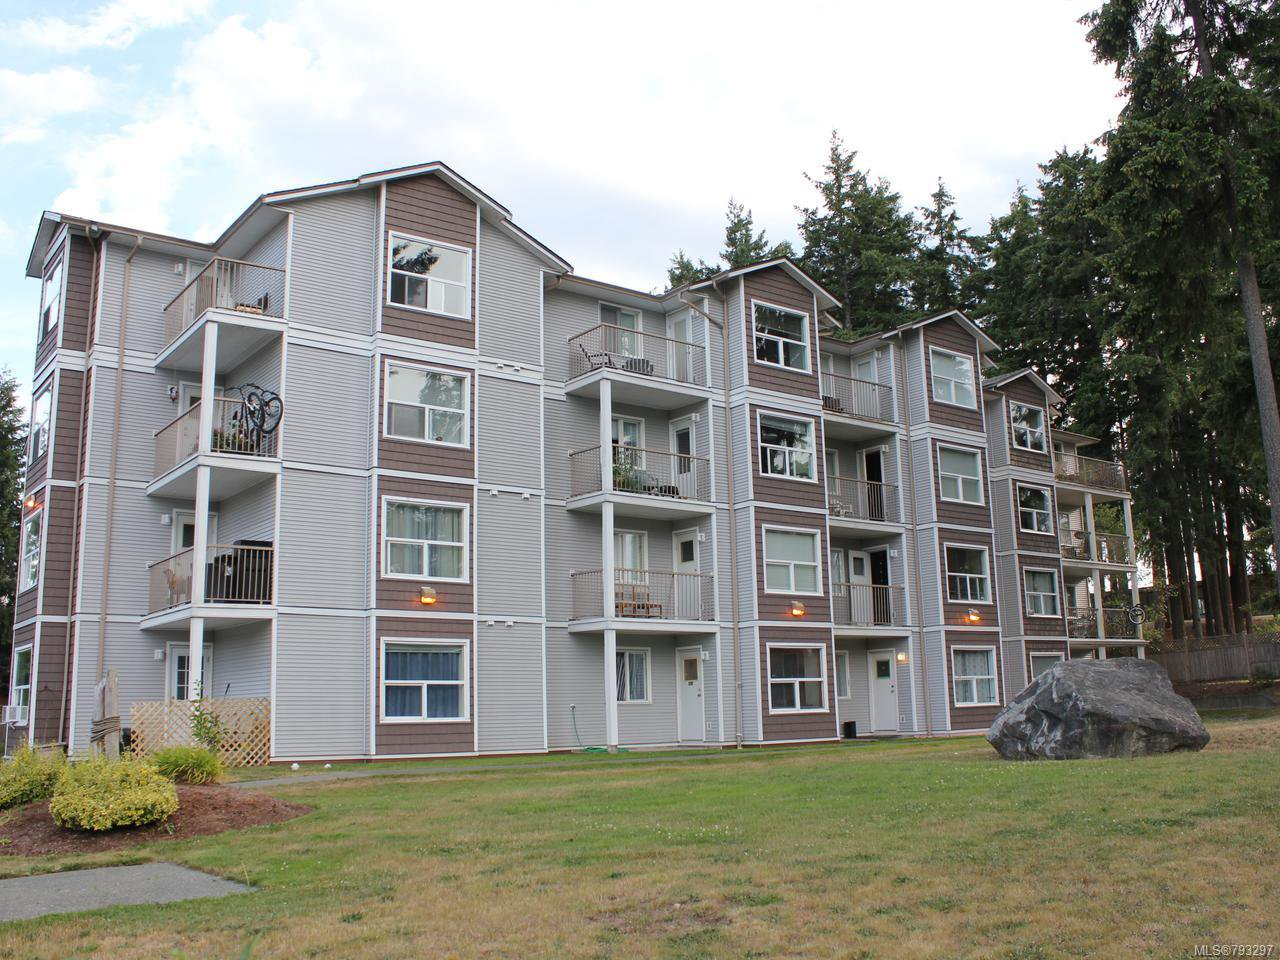 Main Photo: 207 282 BIRCH STREET in CAMPBELL RIVER: CR Campbell River Central Condo for sale (Campbell River)  : MLS®# 793297